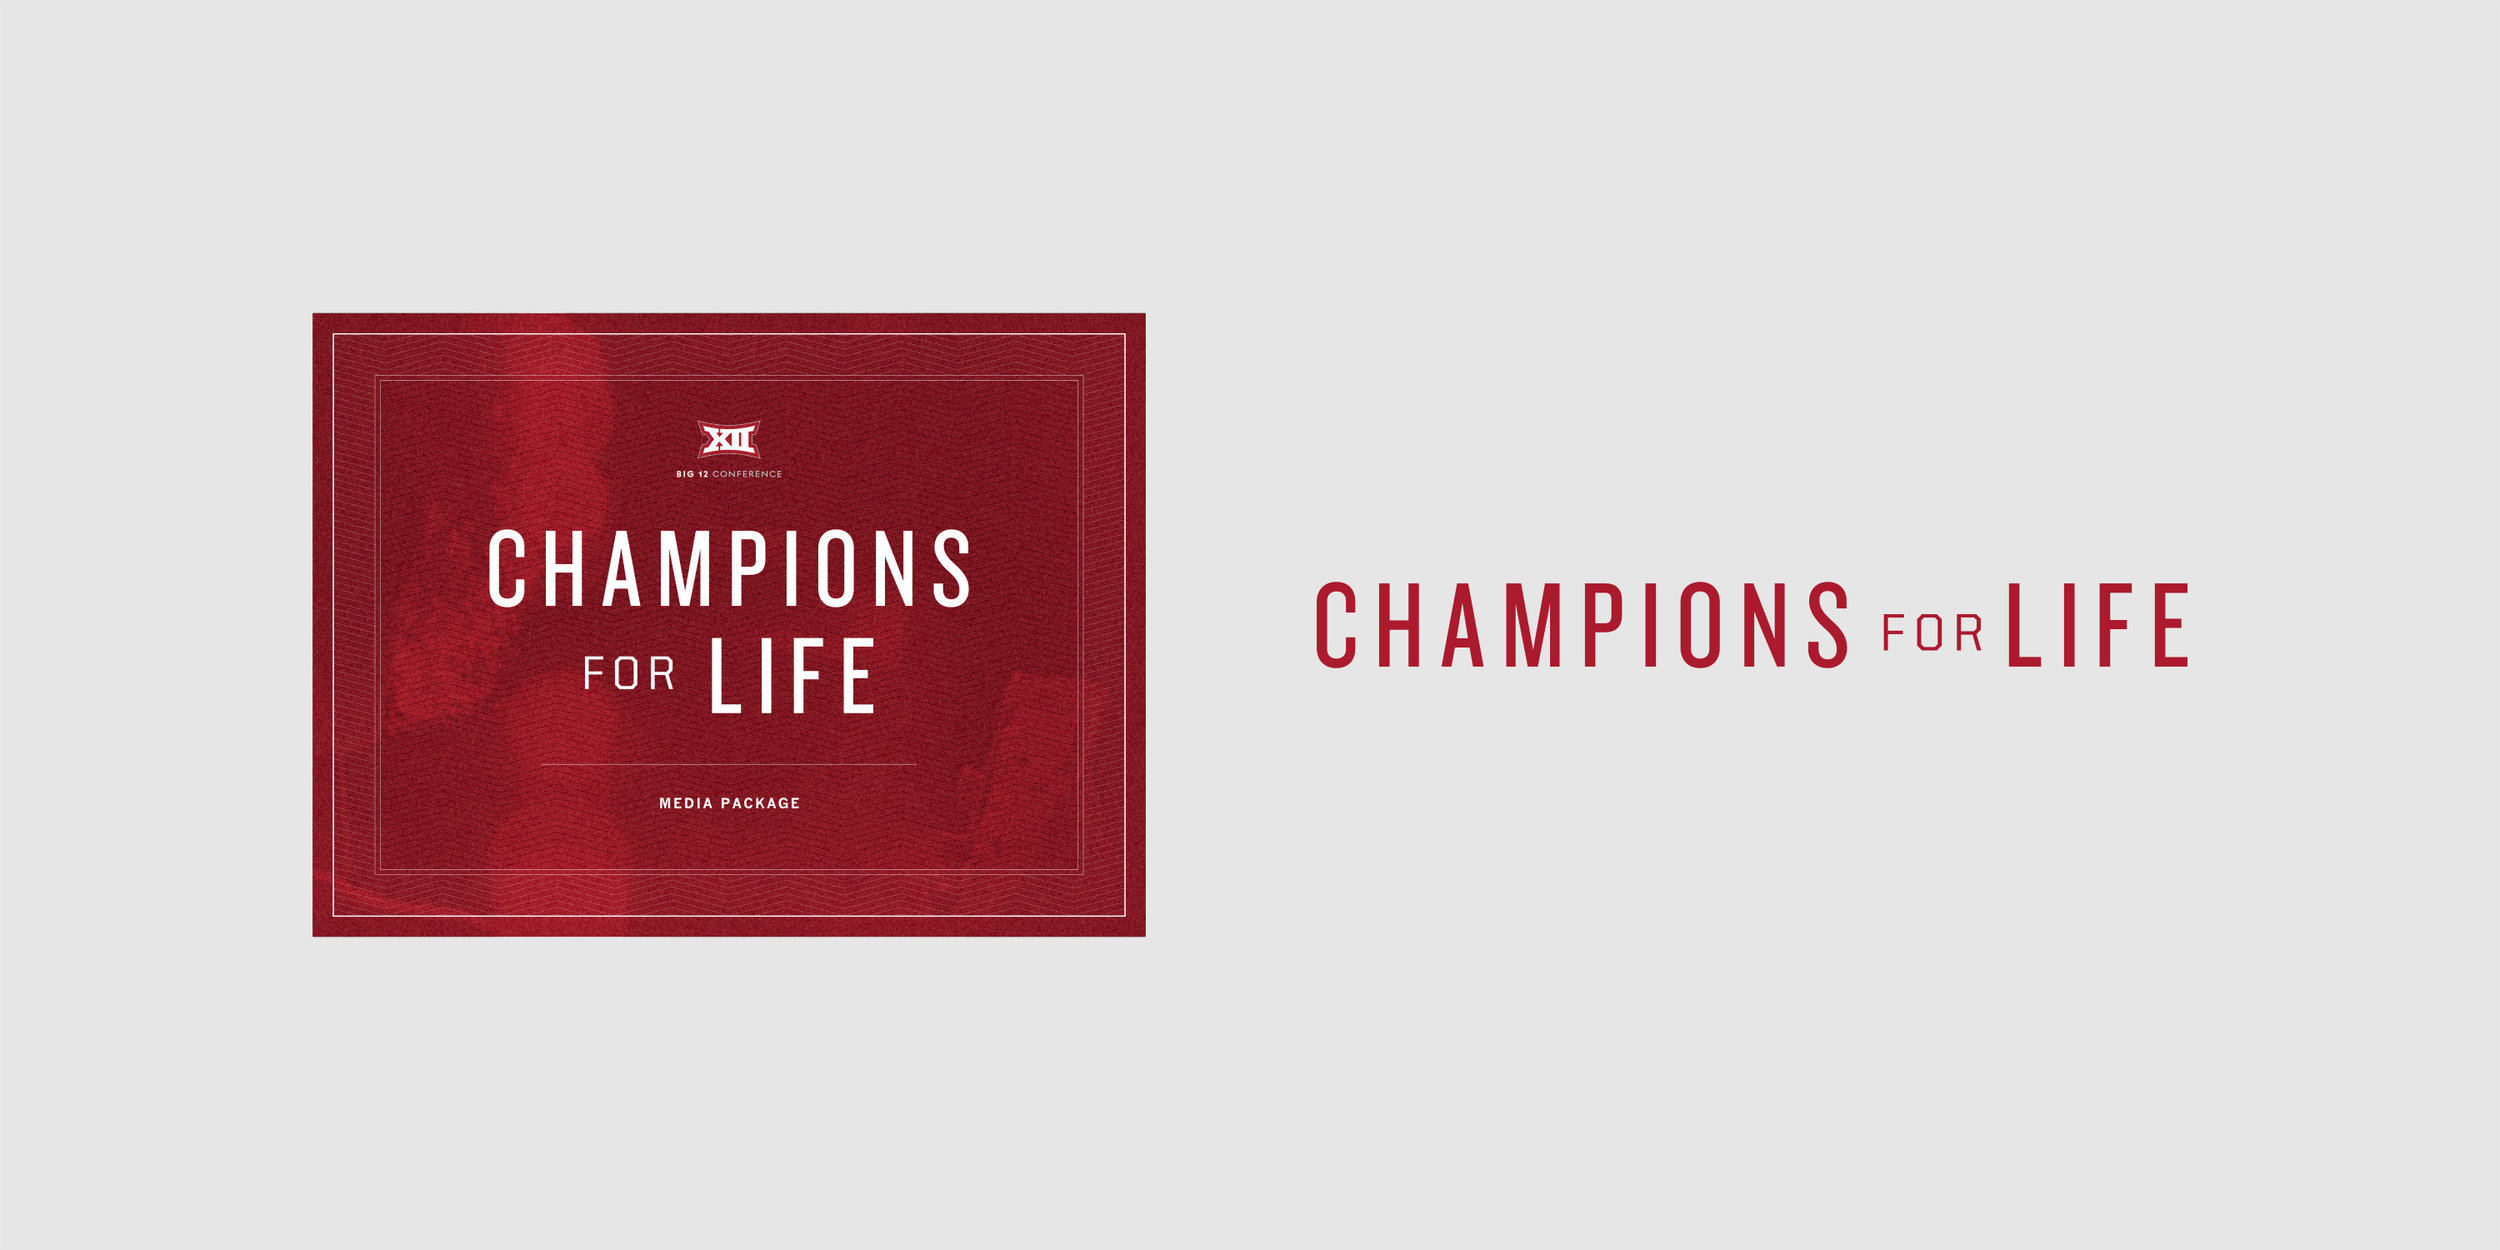 ronaldvillegas-big12-champions-for-life.jpg